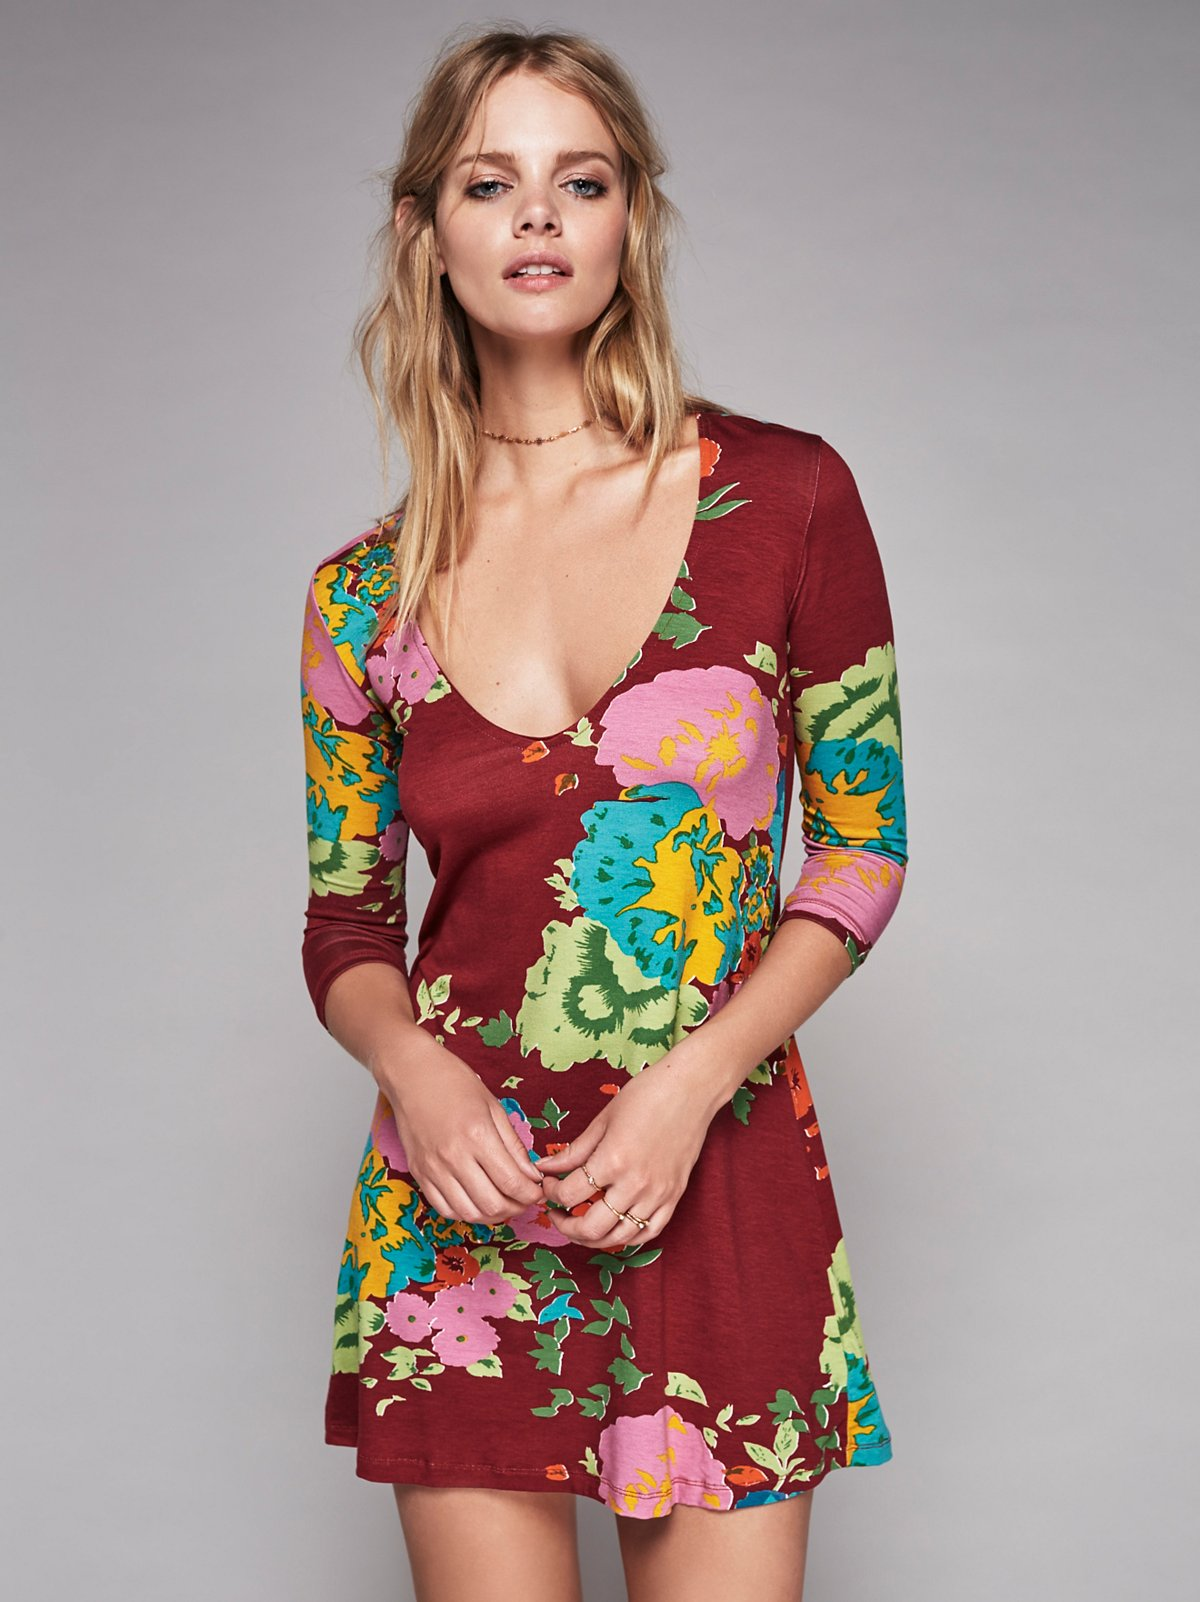 Gardener Printed Mini Dress